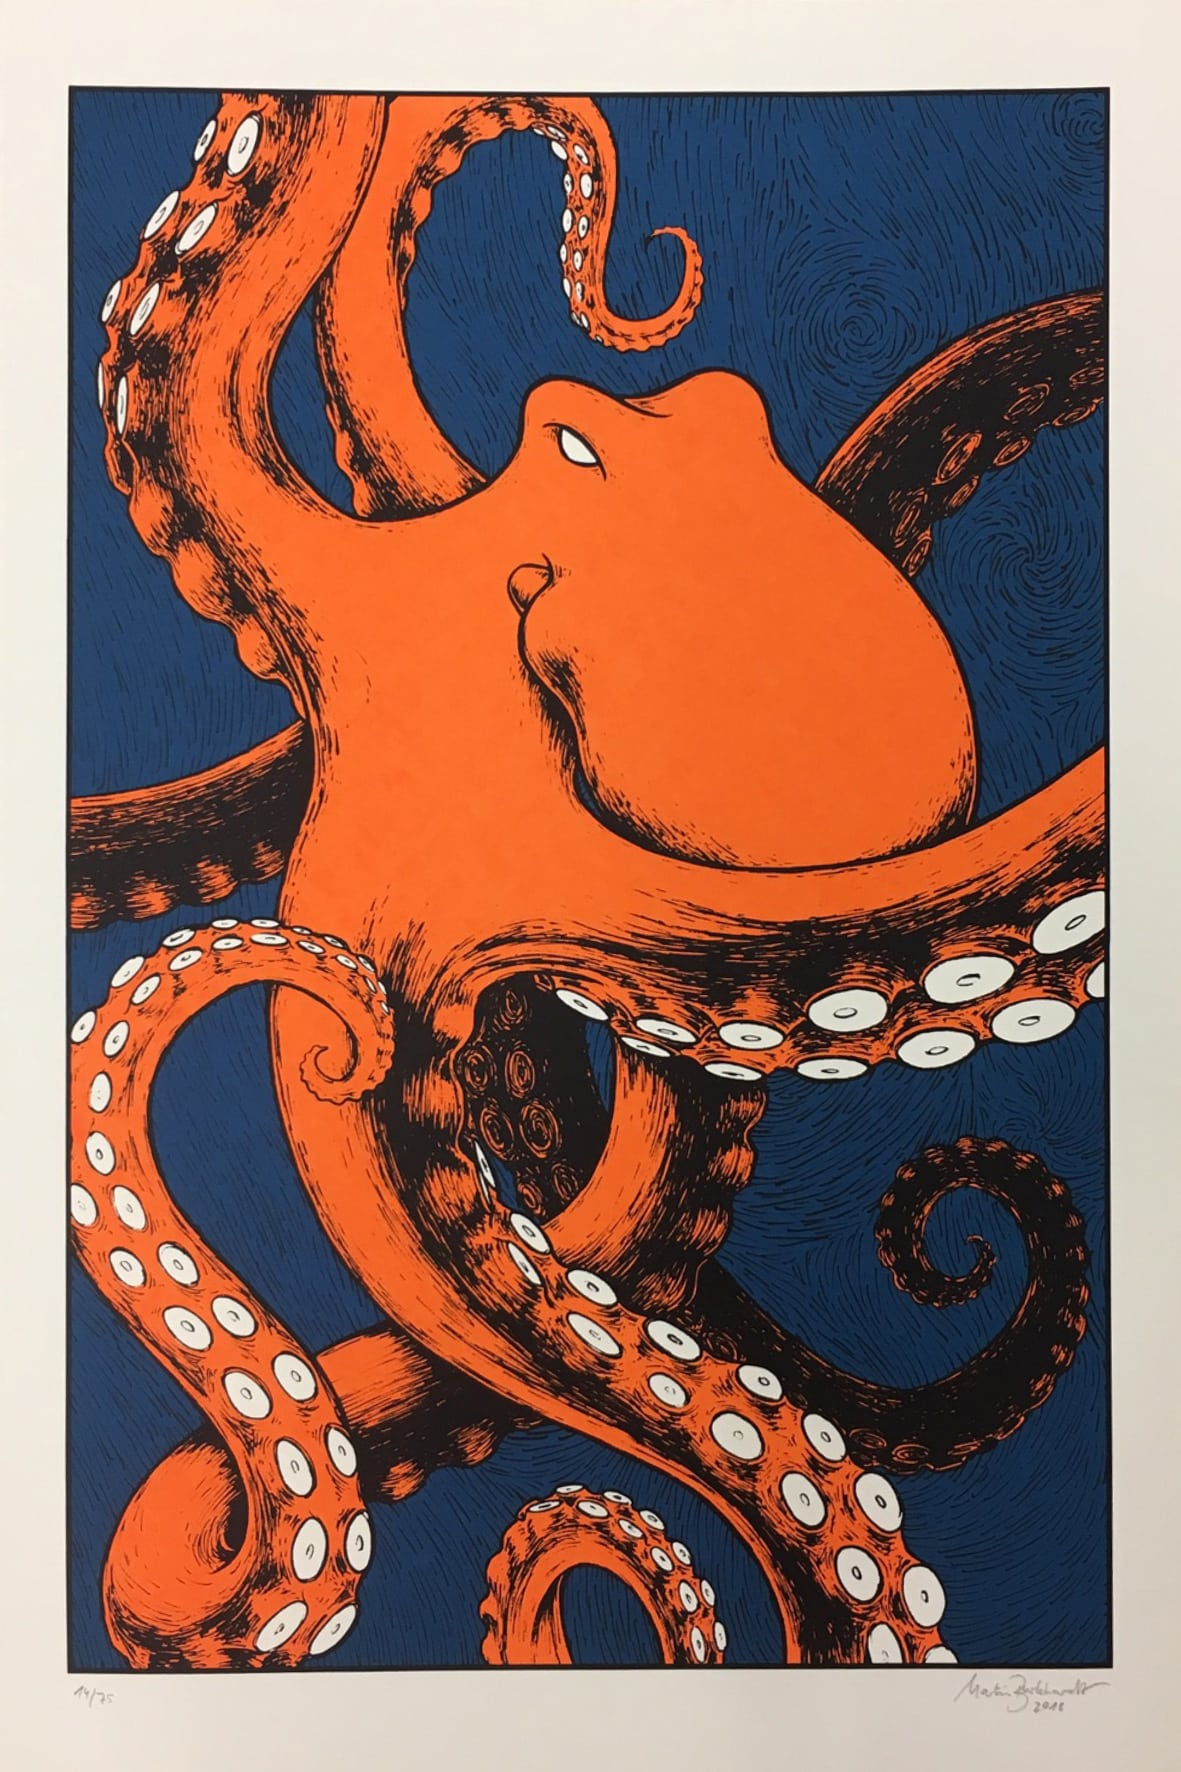 Oktopus Siebdruck Illustration